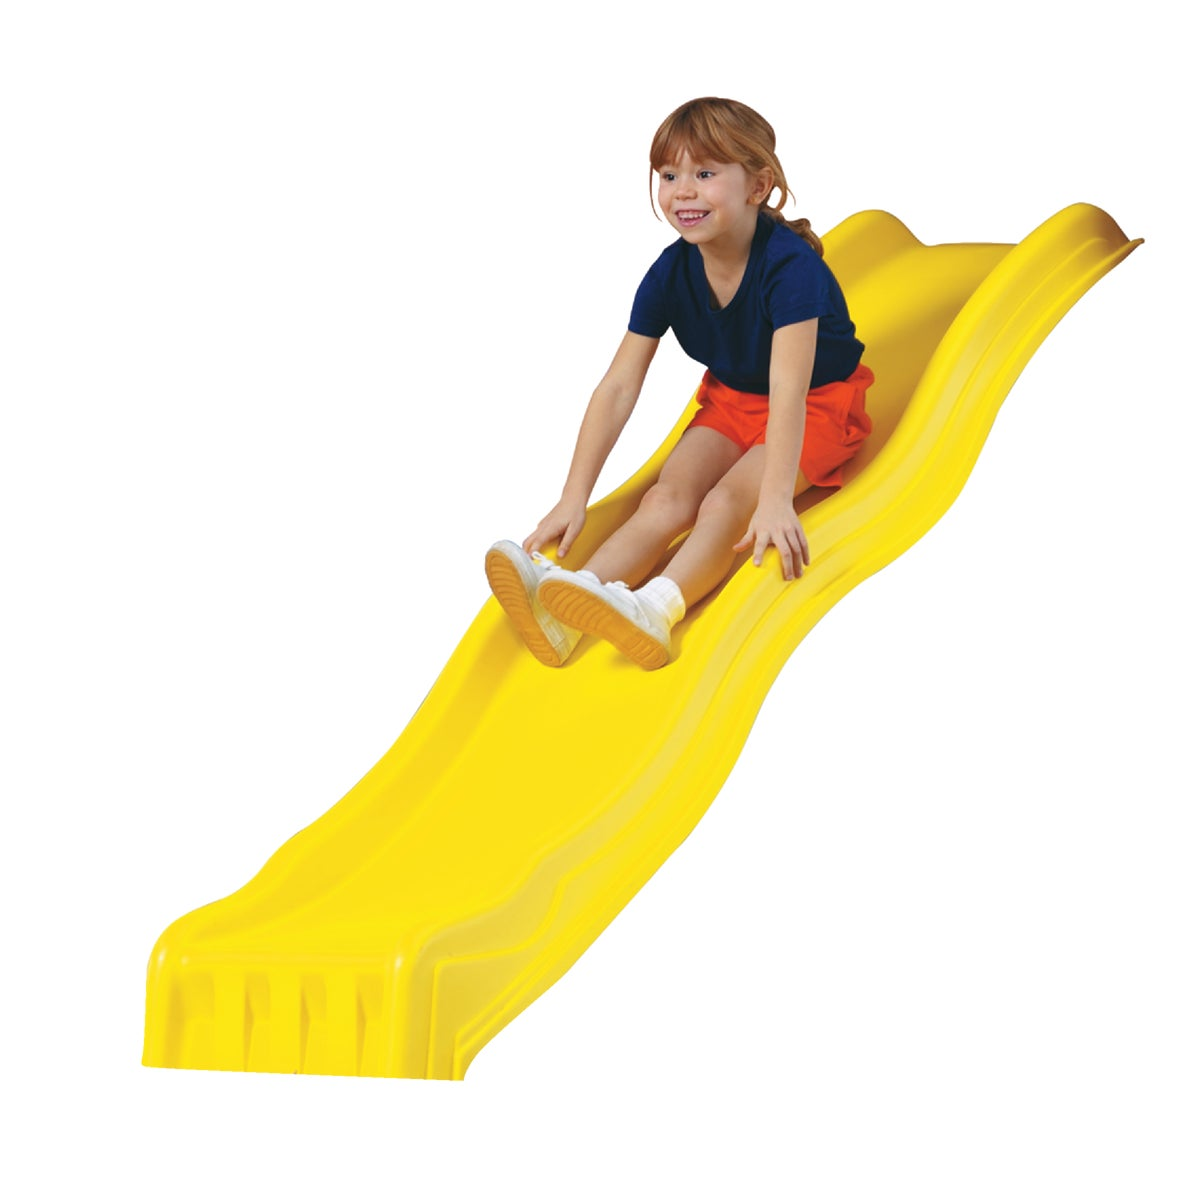 YELLOW COOL WAVE SLIDE